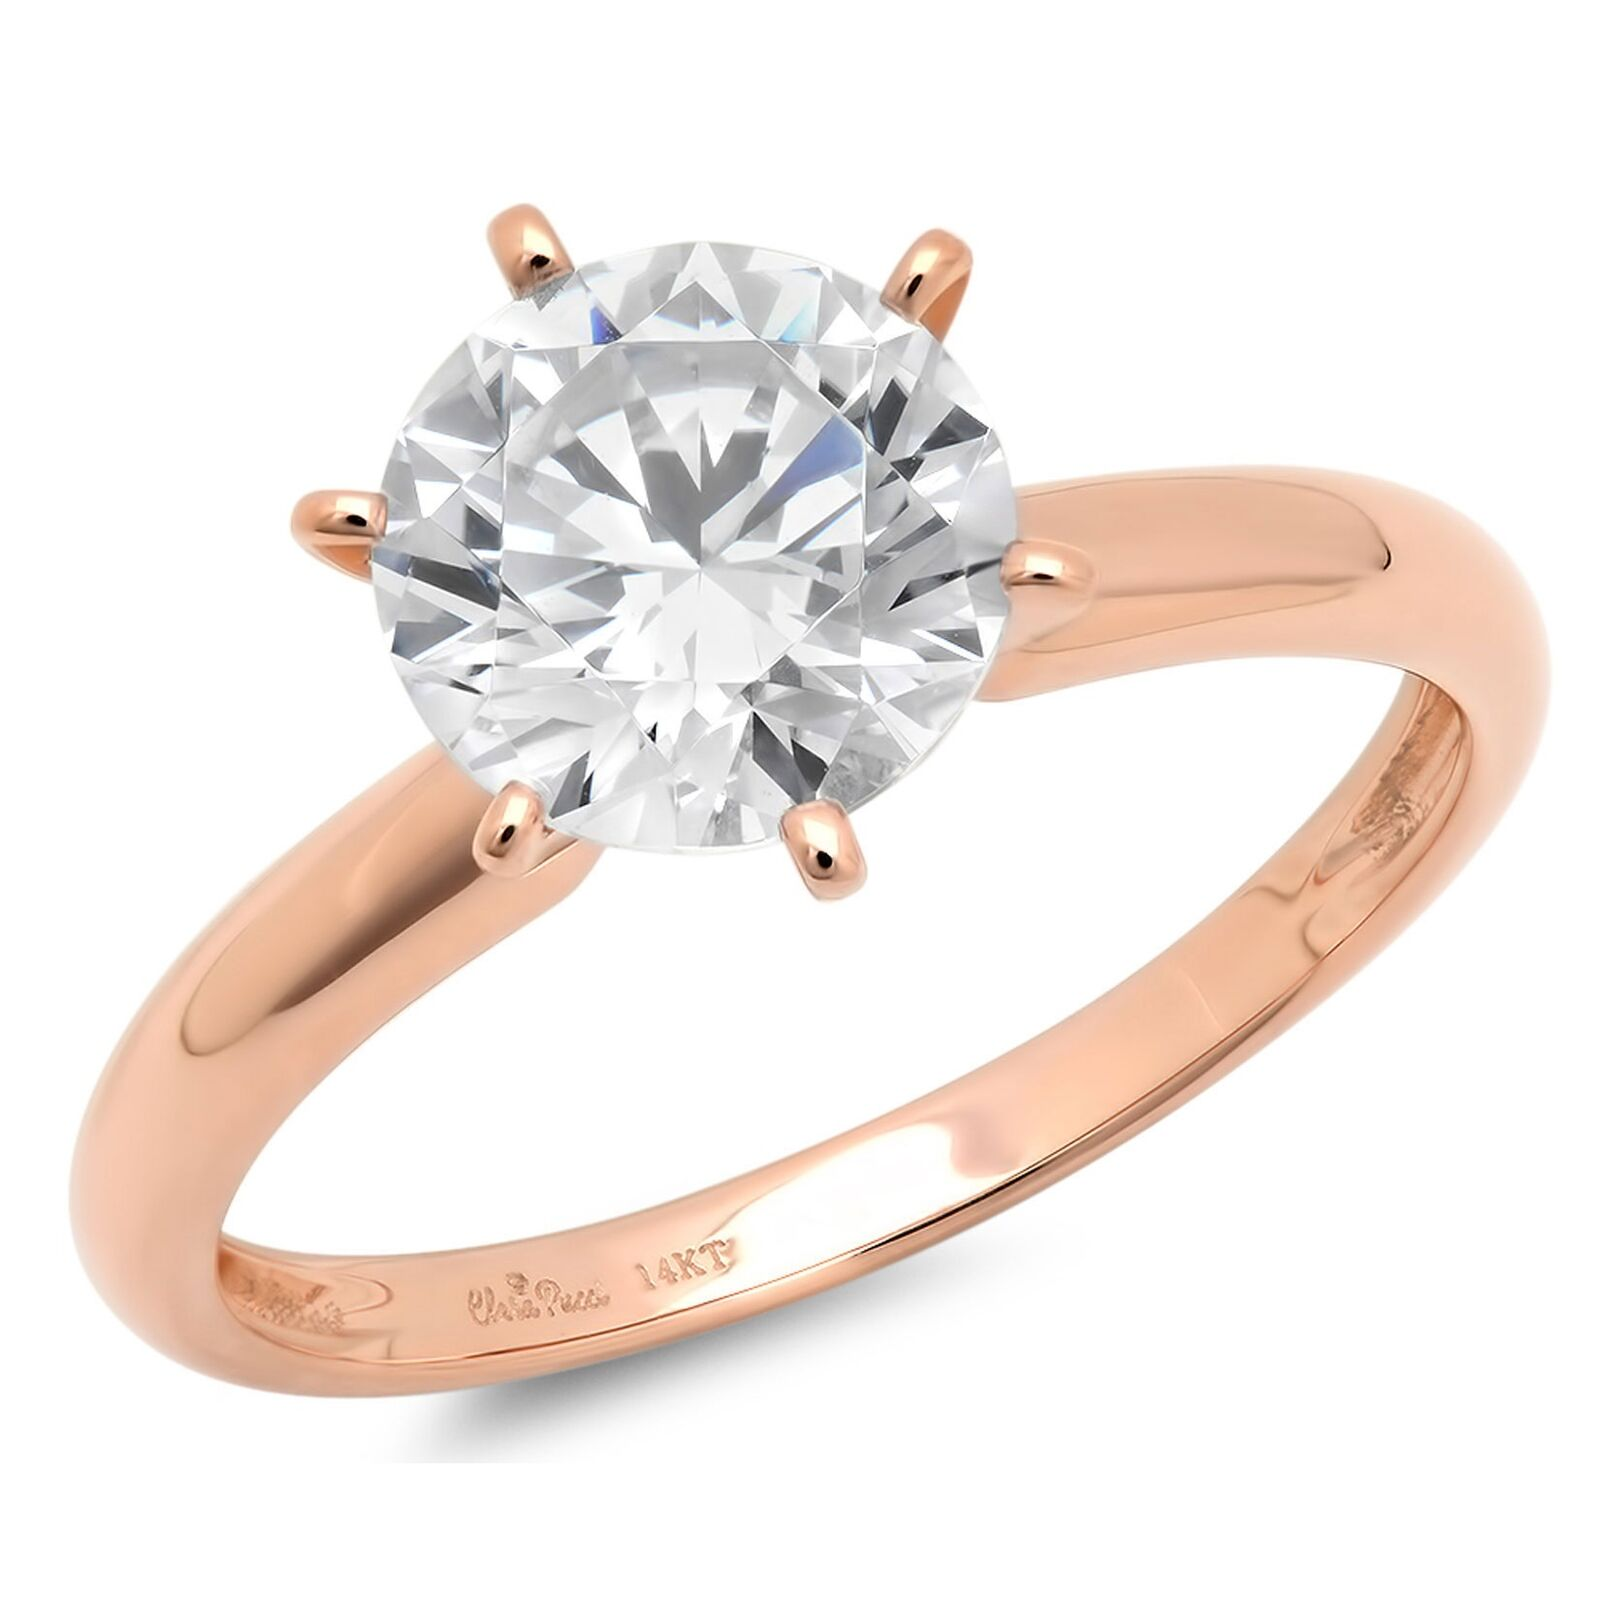 1.7ct Round Cut Wedding Bridal Engagement Anniversary Ring 14k Solid pink gold